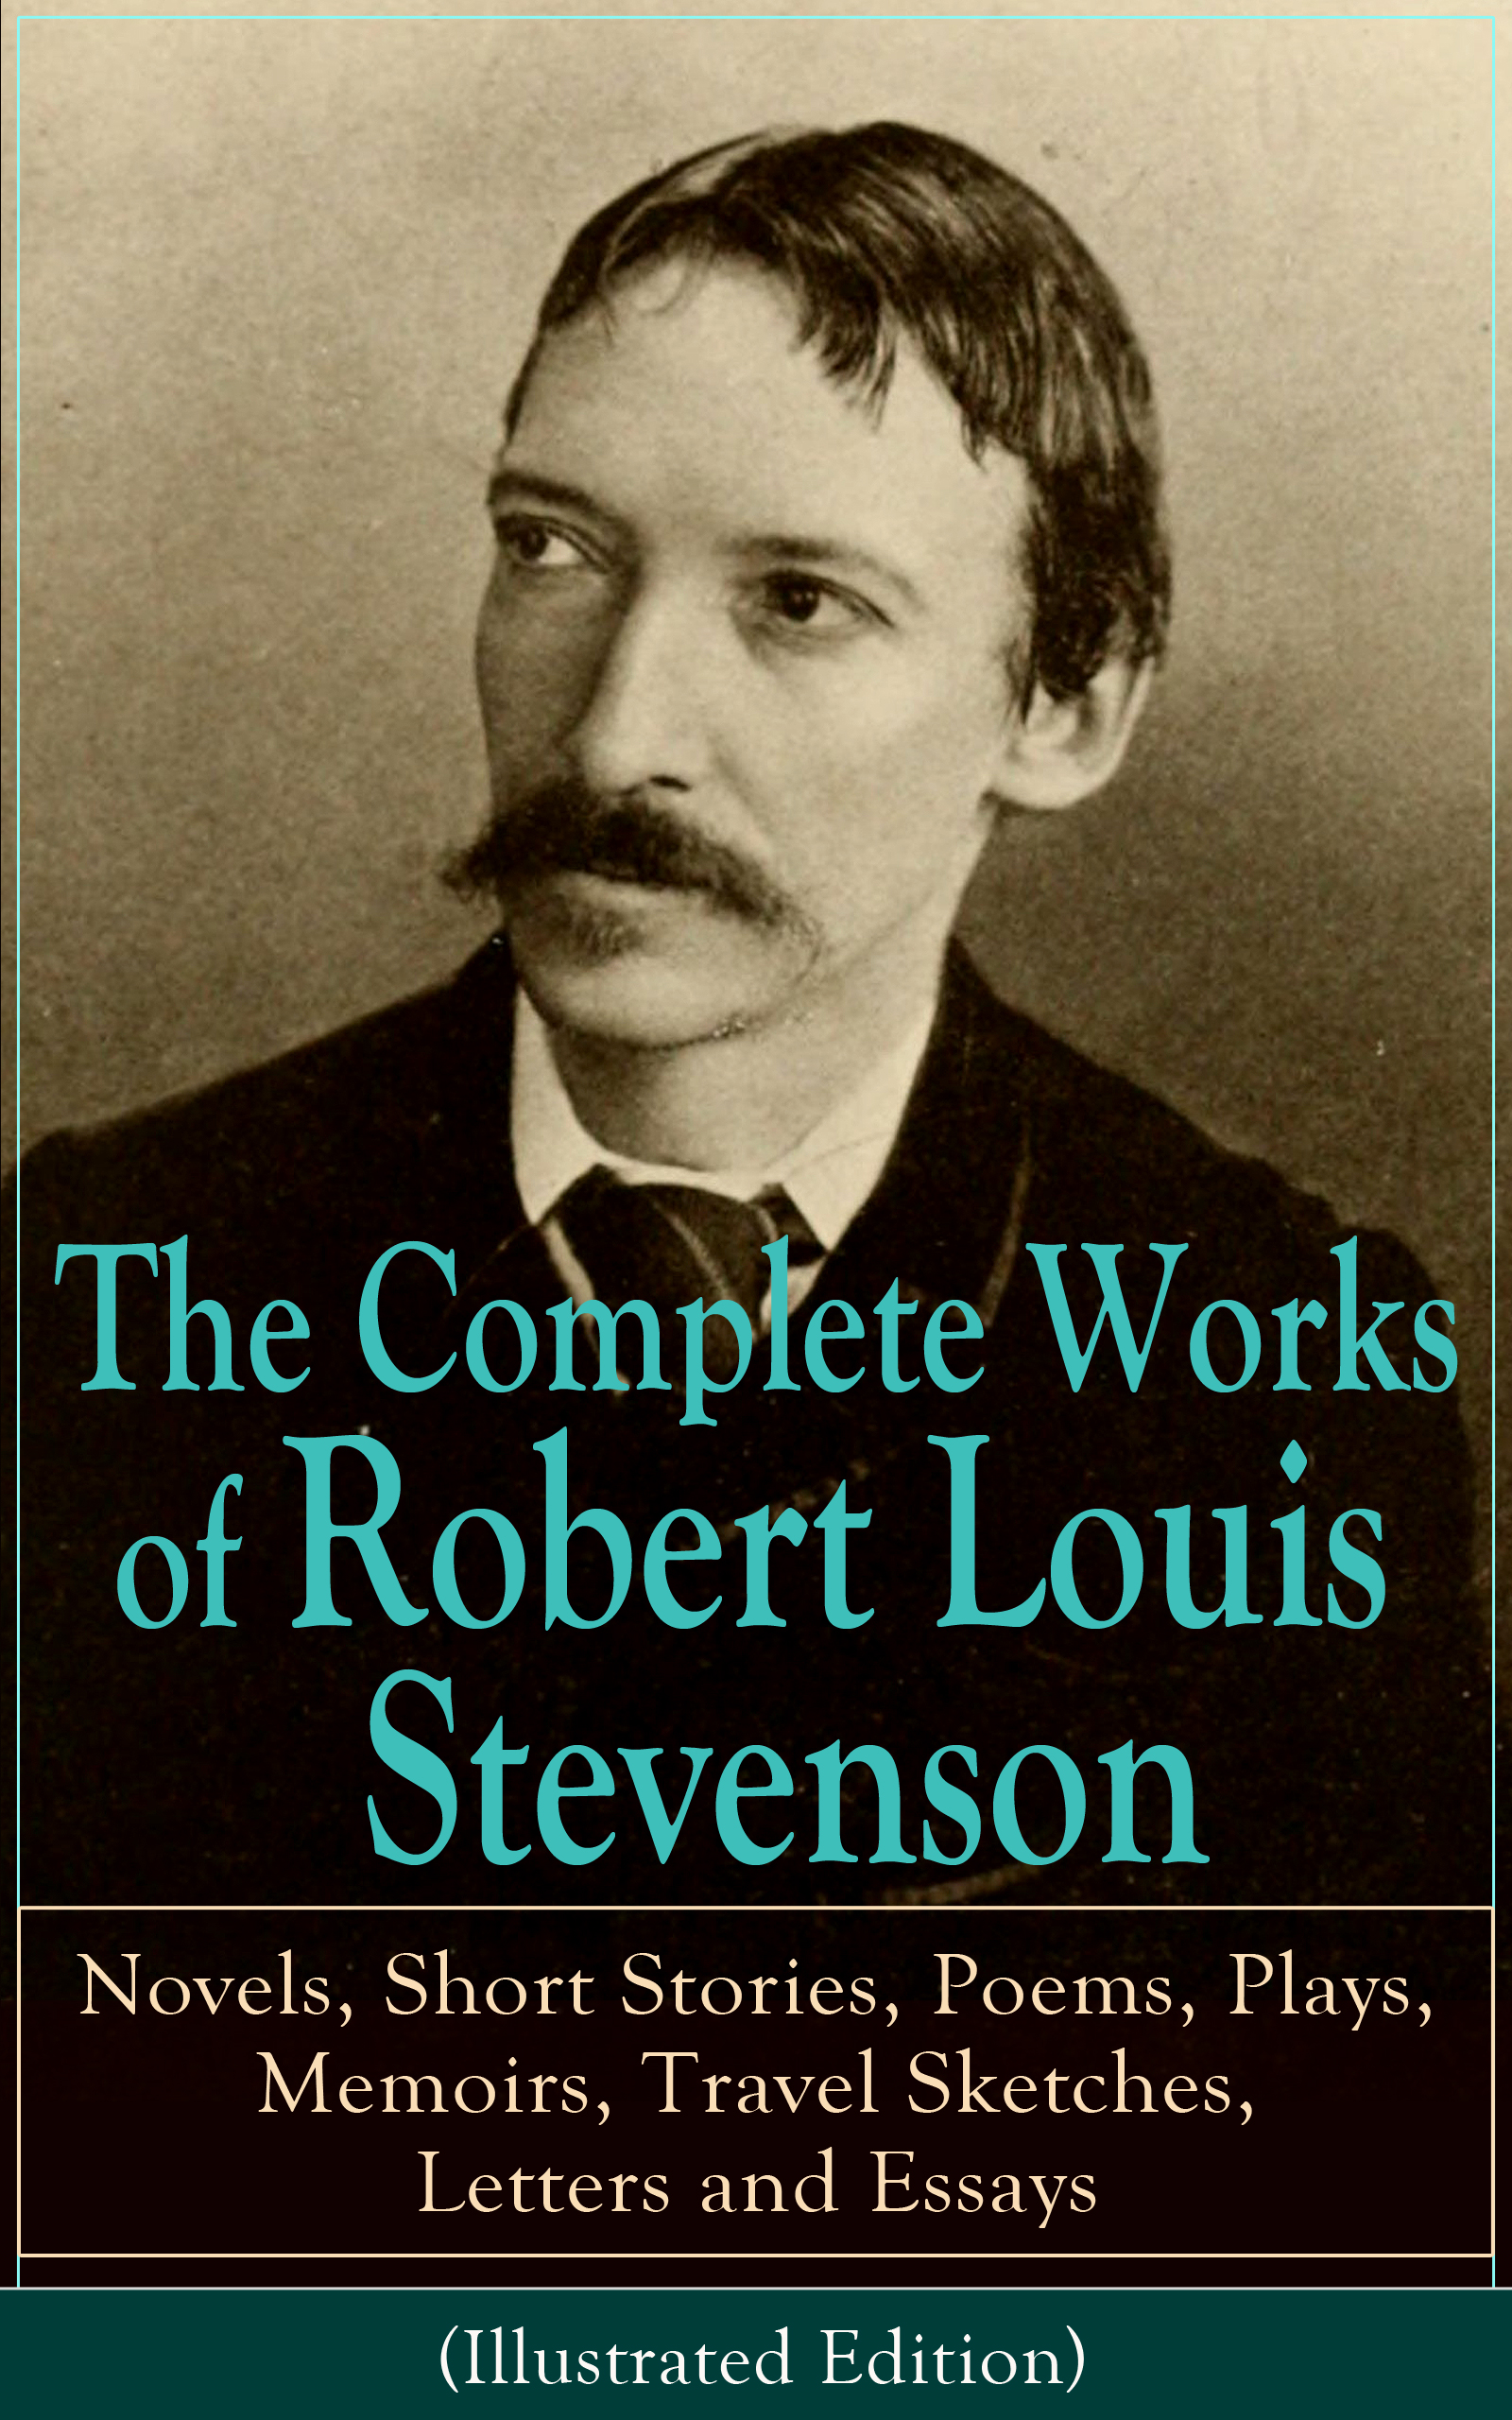 Robert Louis Stevenson The Complete Works of Robert Louis Stevenson: Novels, Short Stories, Poems, Plays, Memoirs, Travel Sketches, Letters and Essays (Illustrated Edition) readon classics the complete works of nathaniel hawthorne novels short stories poetry essays letters and memoirs illustrated edition the scarlet letter with its romance tanglewood tales birthmark ghost